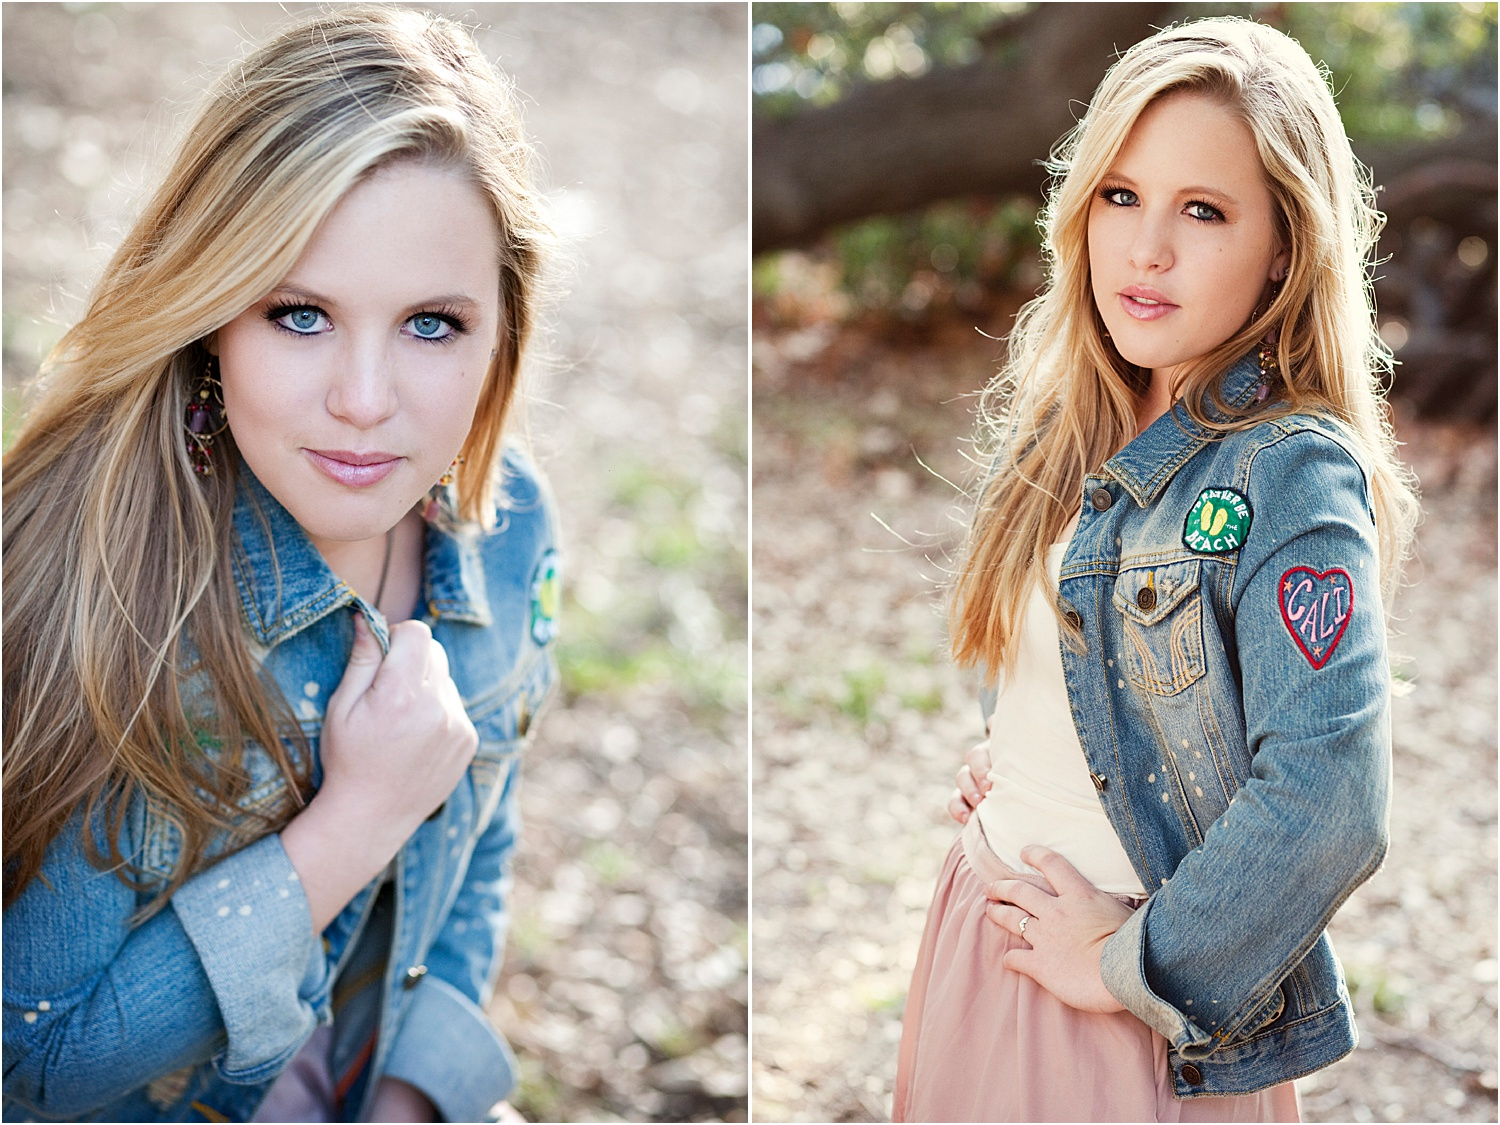 Senior Photo Tips for Better Senior Photography